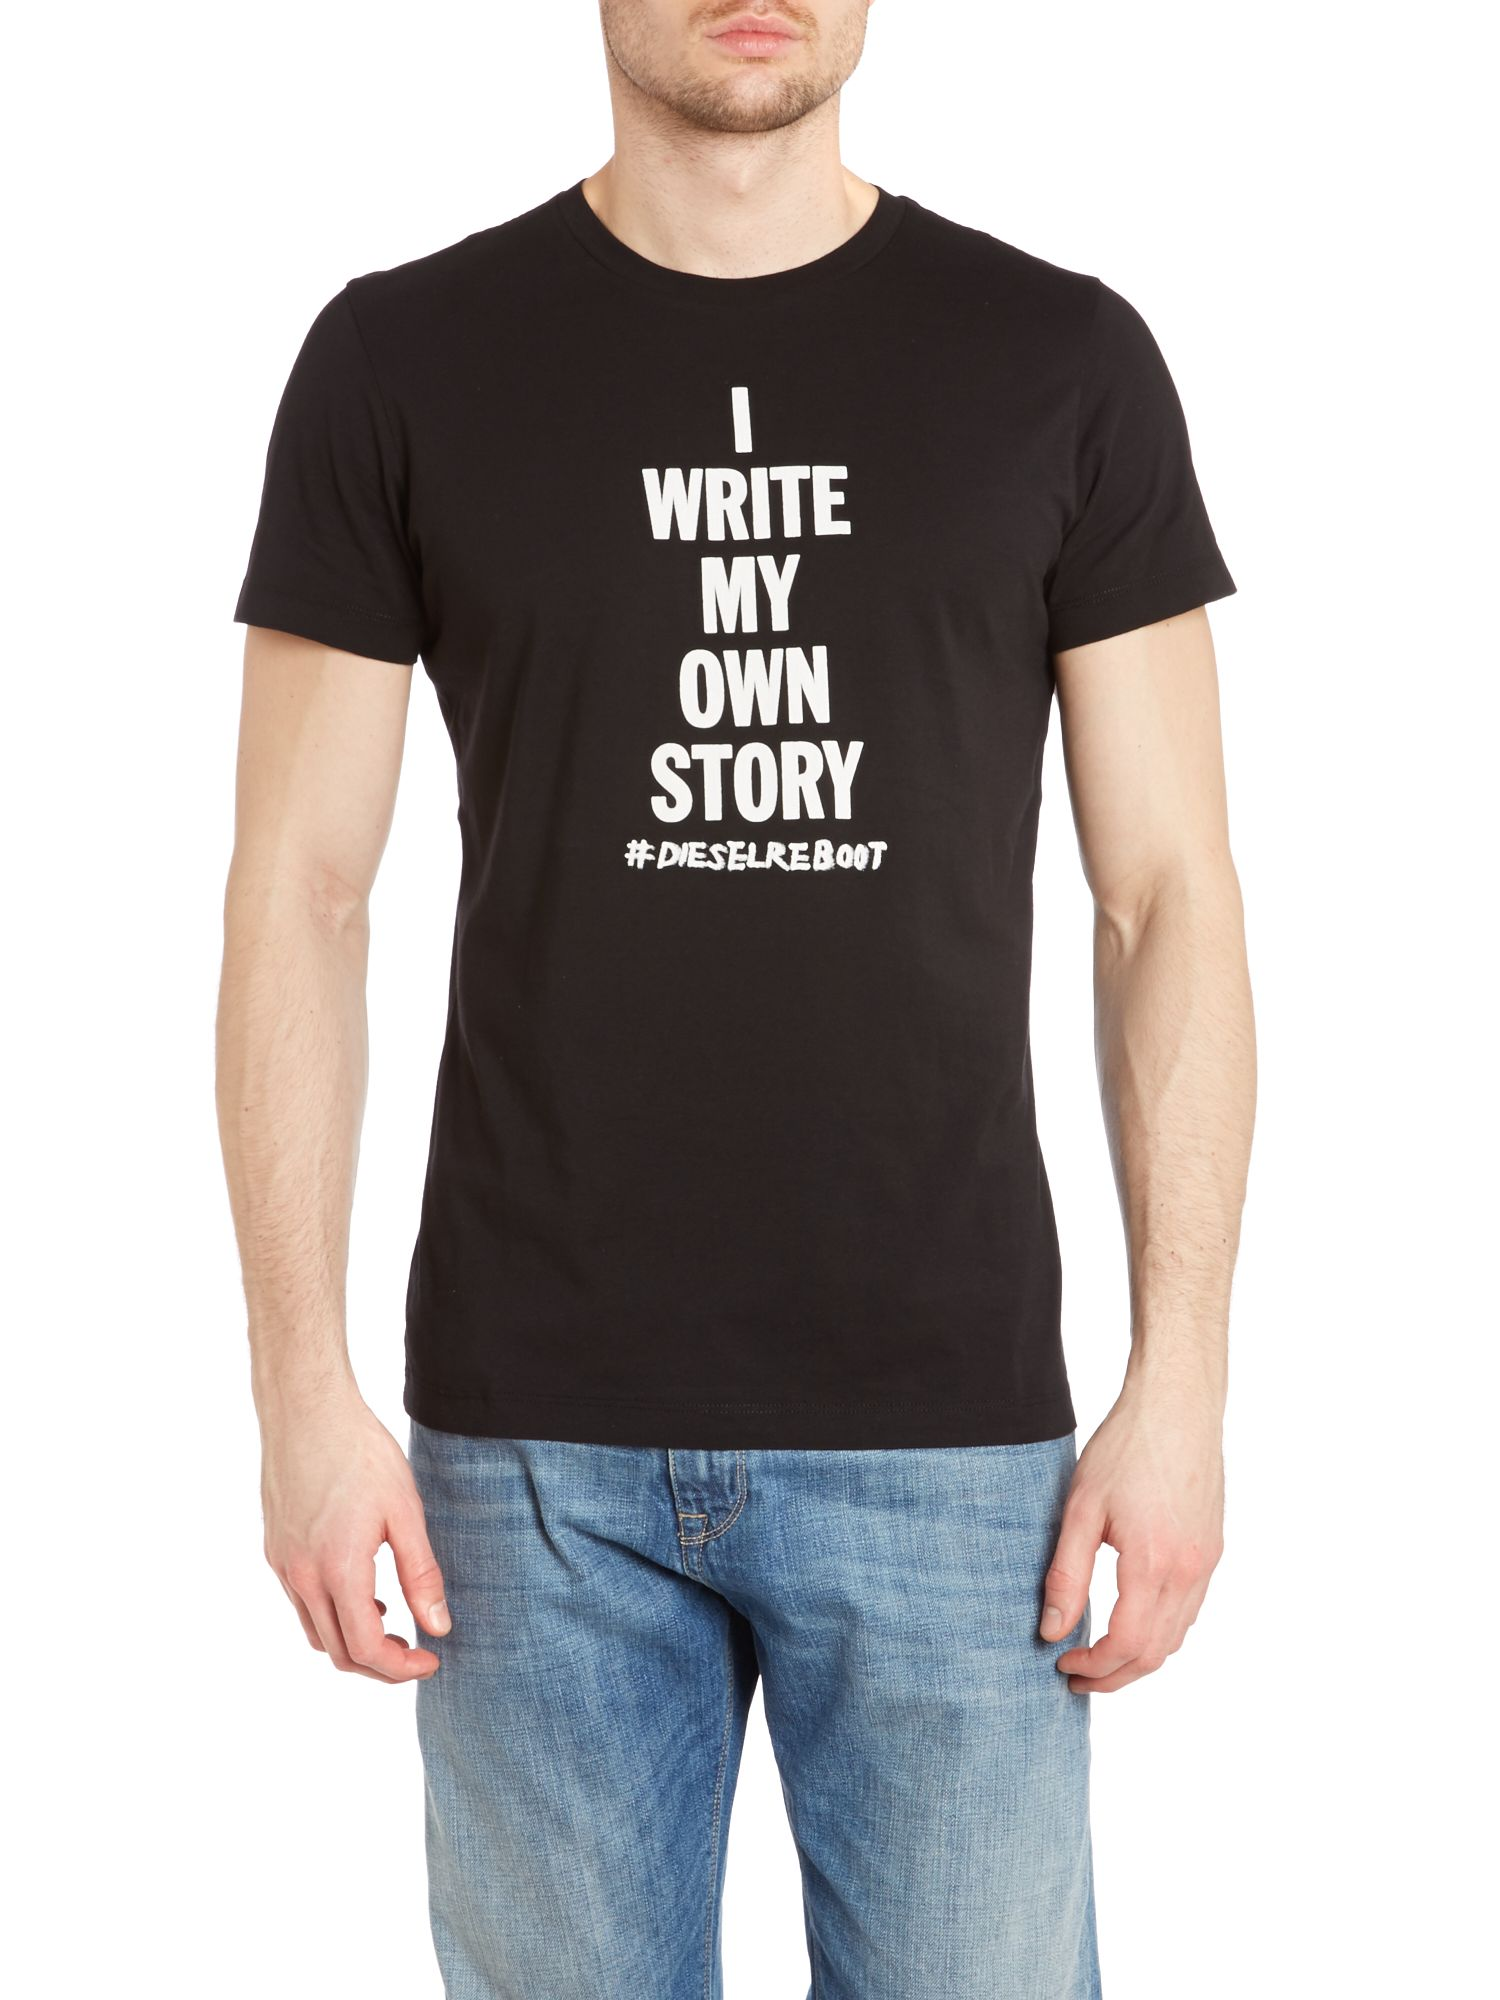 Own story printed t shirt